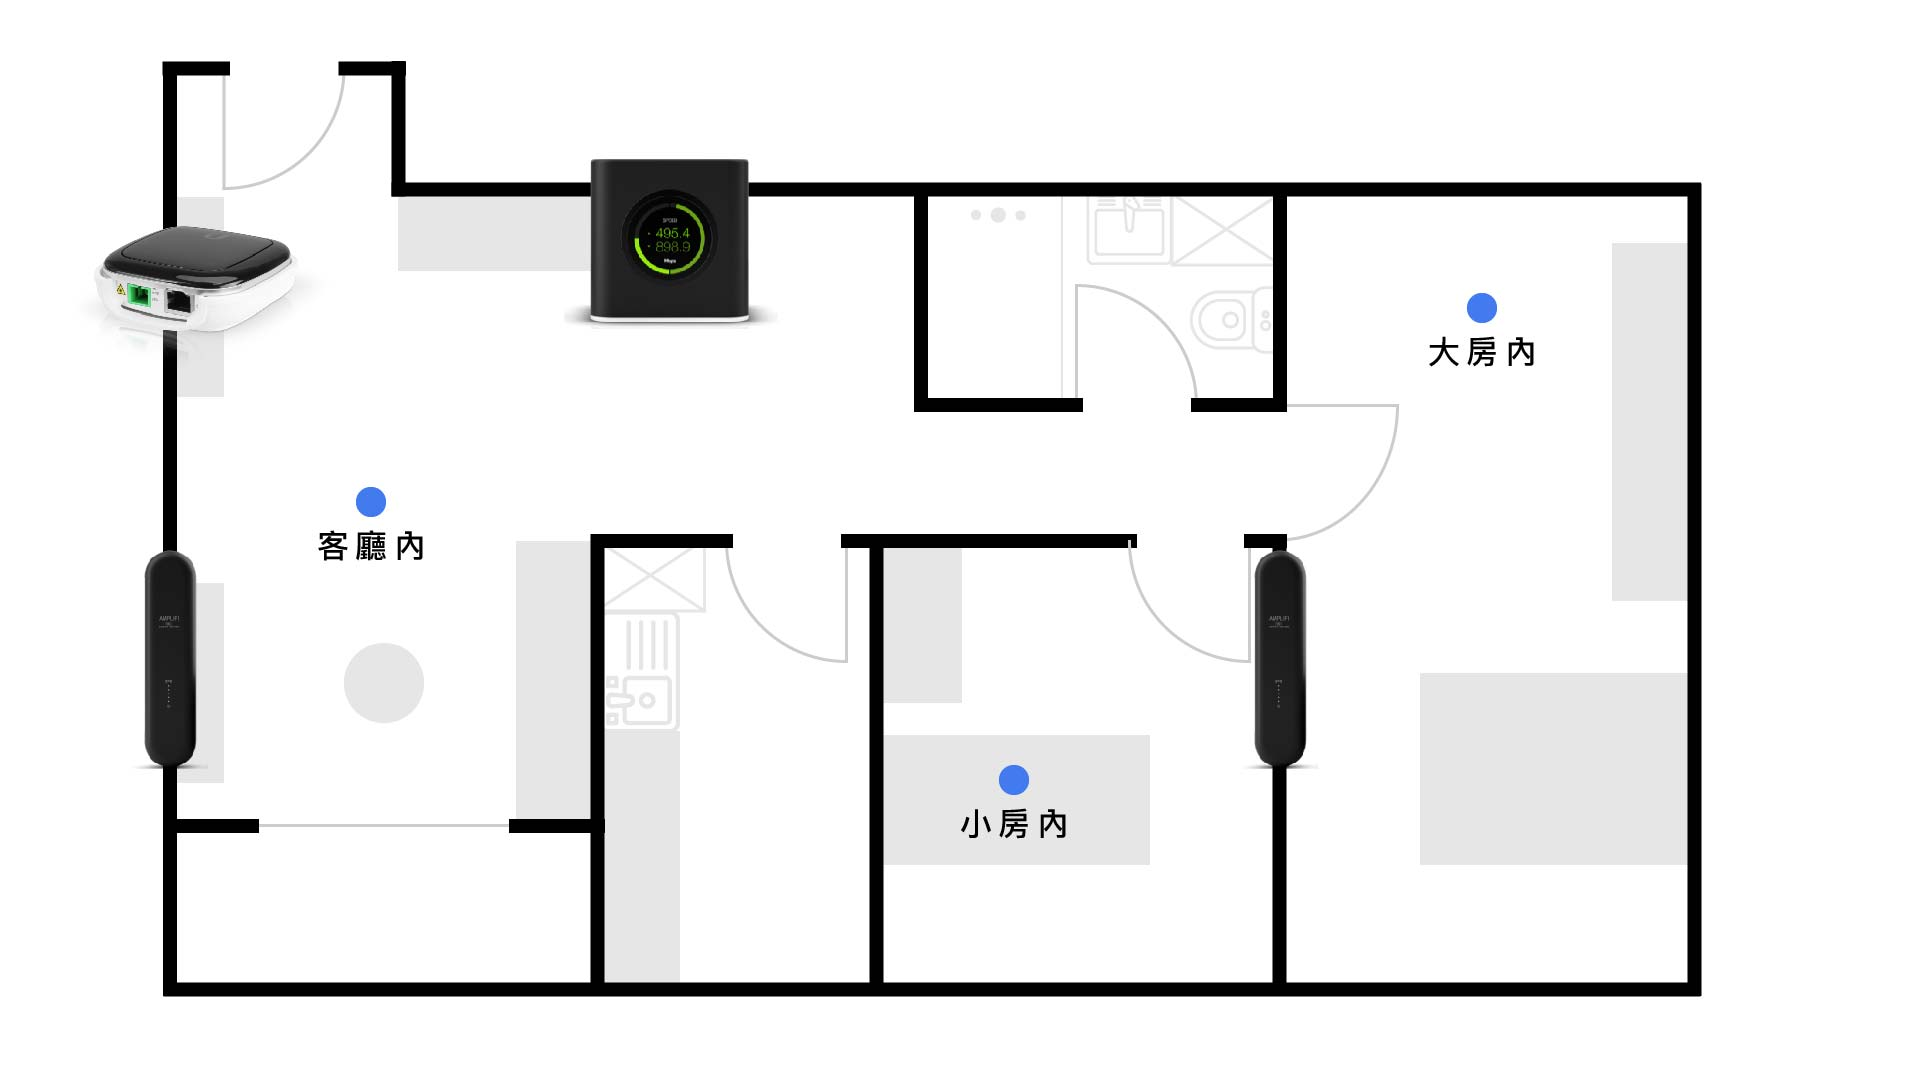 Ubiquiti AmpliFi Gamer's Edition 評測:Mesh WiFi 低延遲網路優化 35